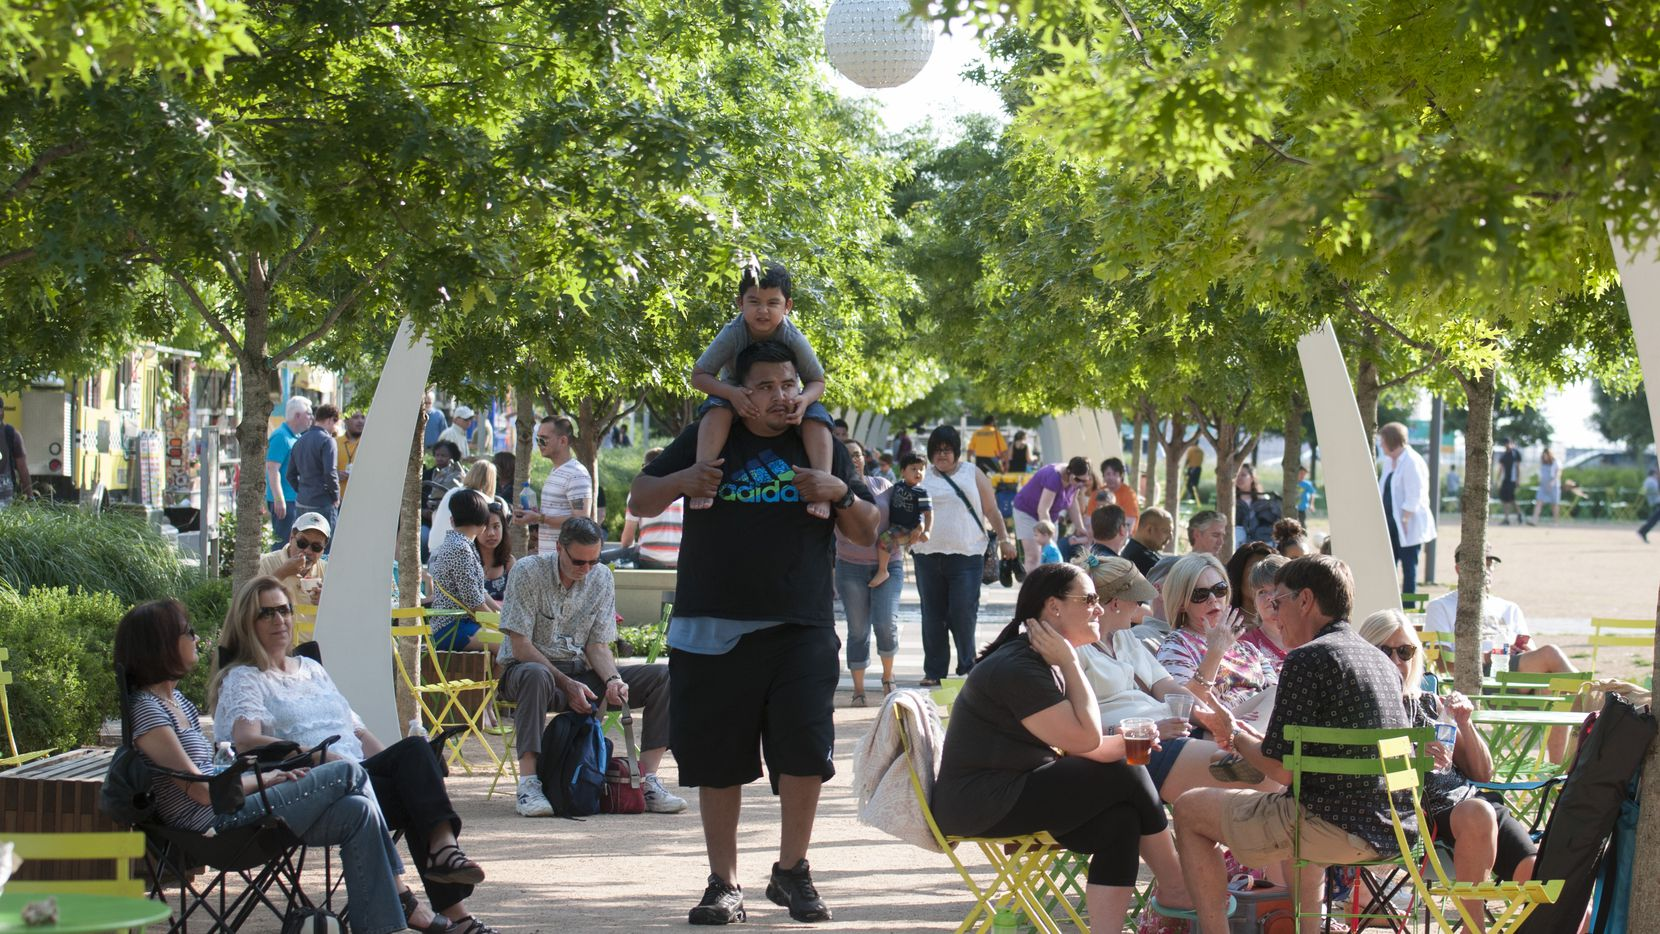 Klyde Warren Park is bound to be busy on Friday, June 18, 2021, with sunny weather and free Sonic drinks.